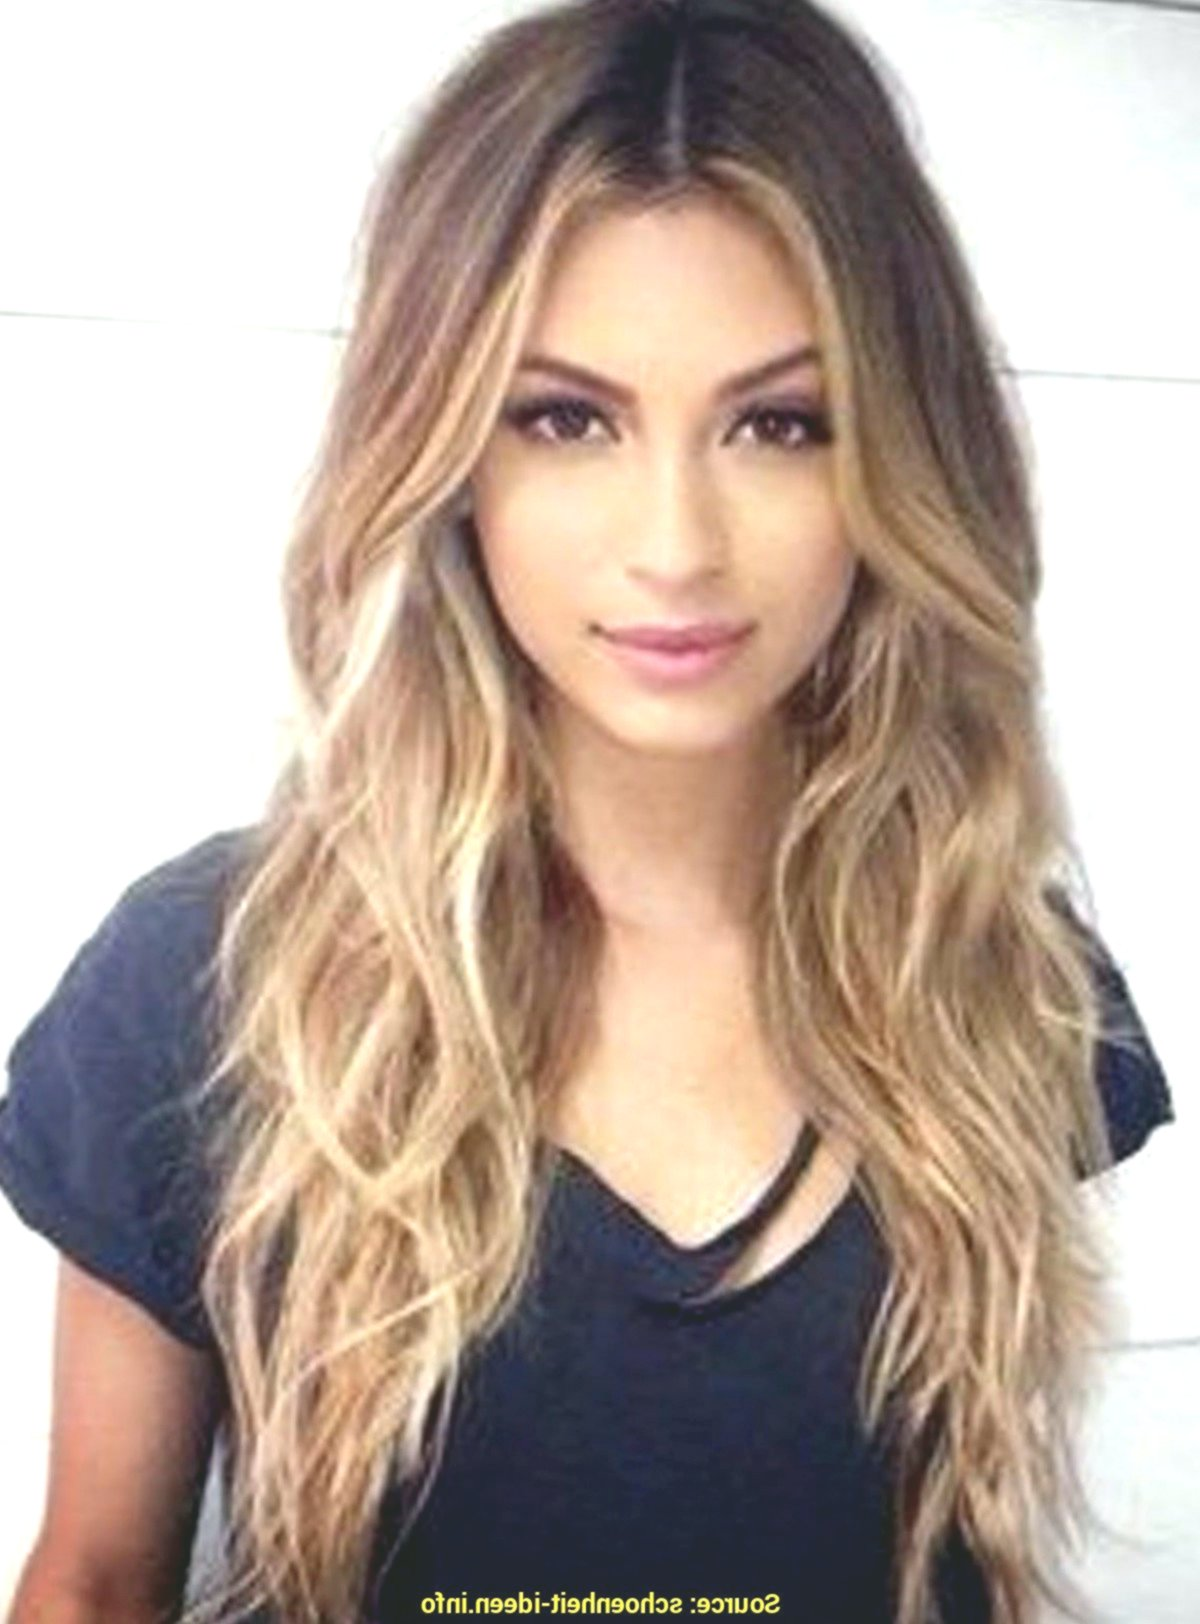 terribly cool thin hair hairstyles gallery-Modern Thin hair hairstyles decoration